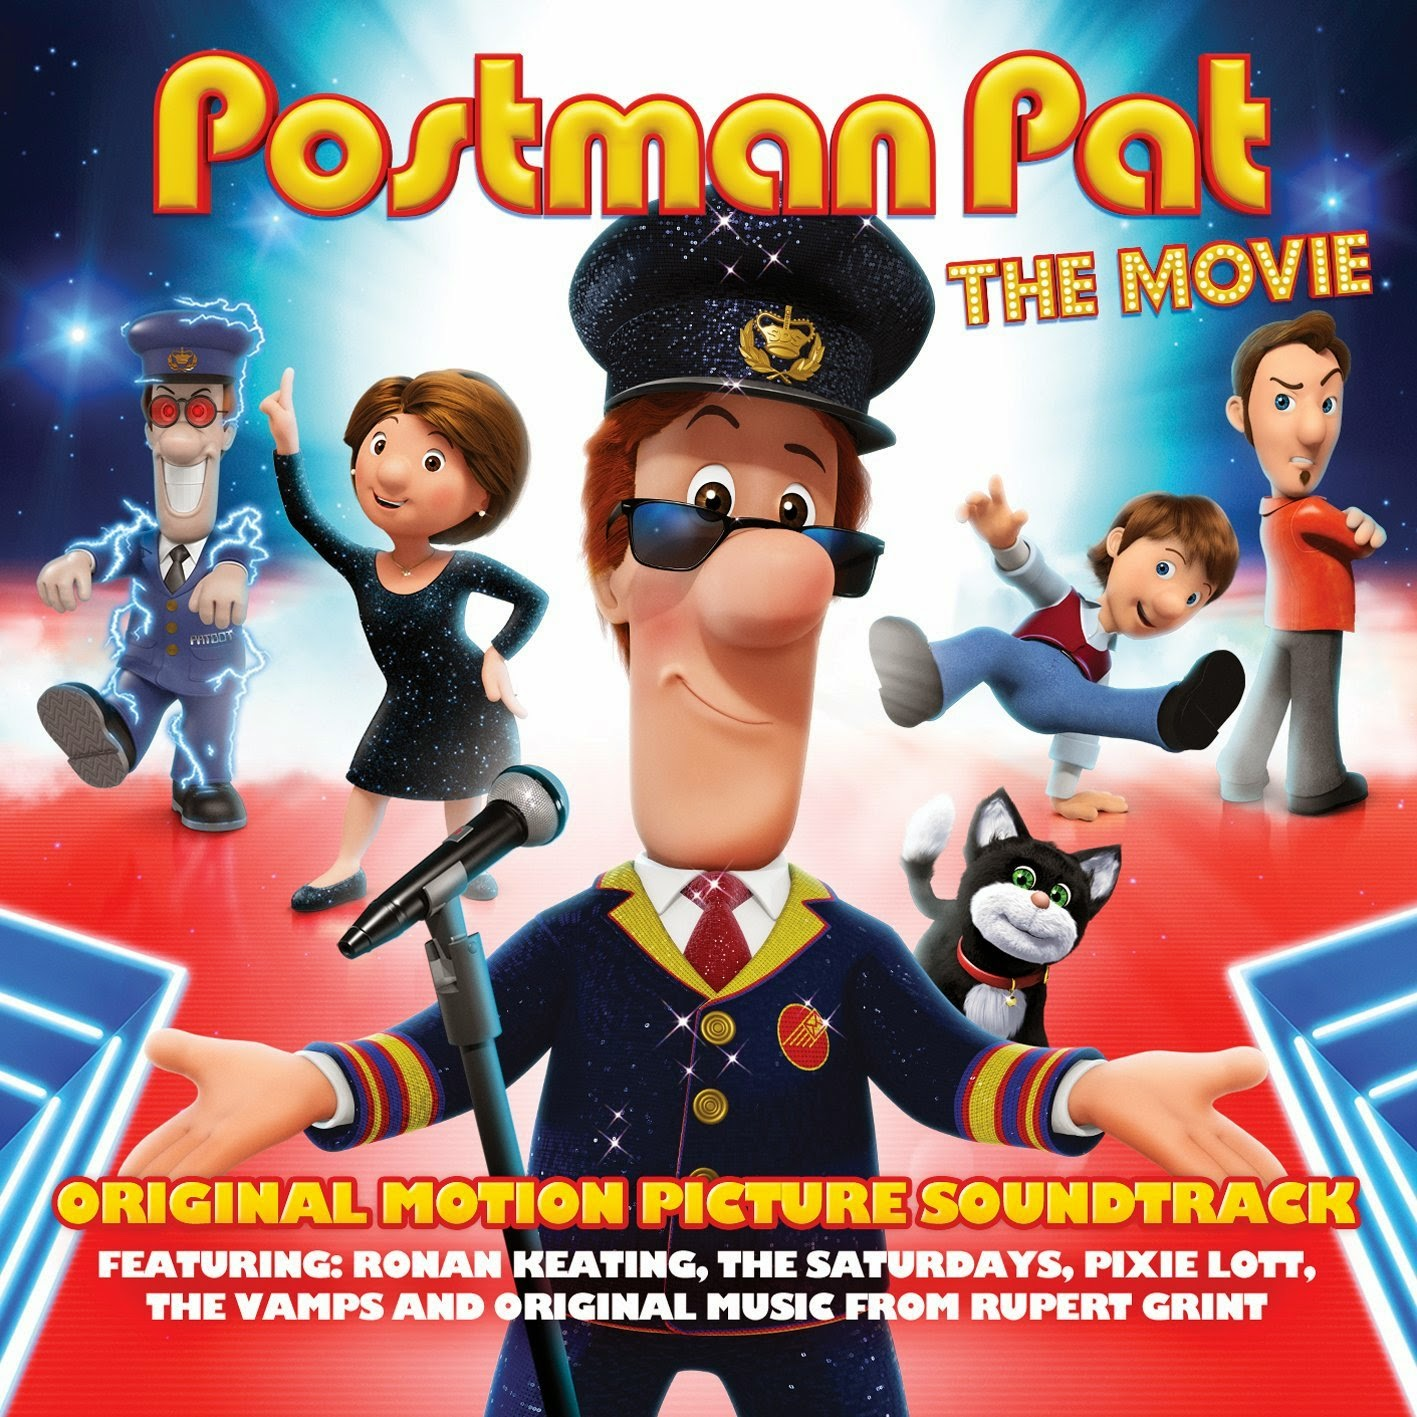 Fireman Sam 3d Wallpaper The Official Soundtrack To Postman Pat The Movie Is